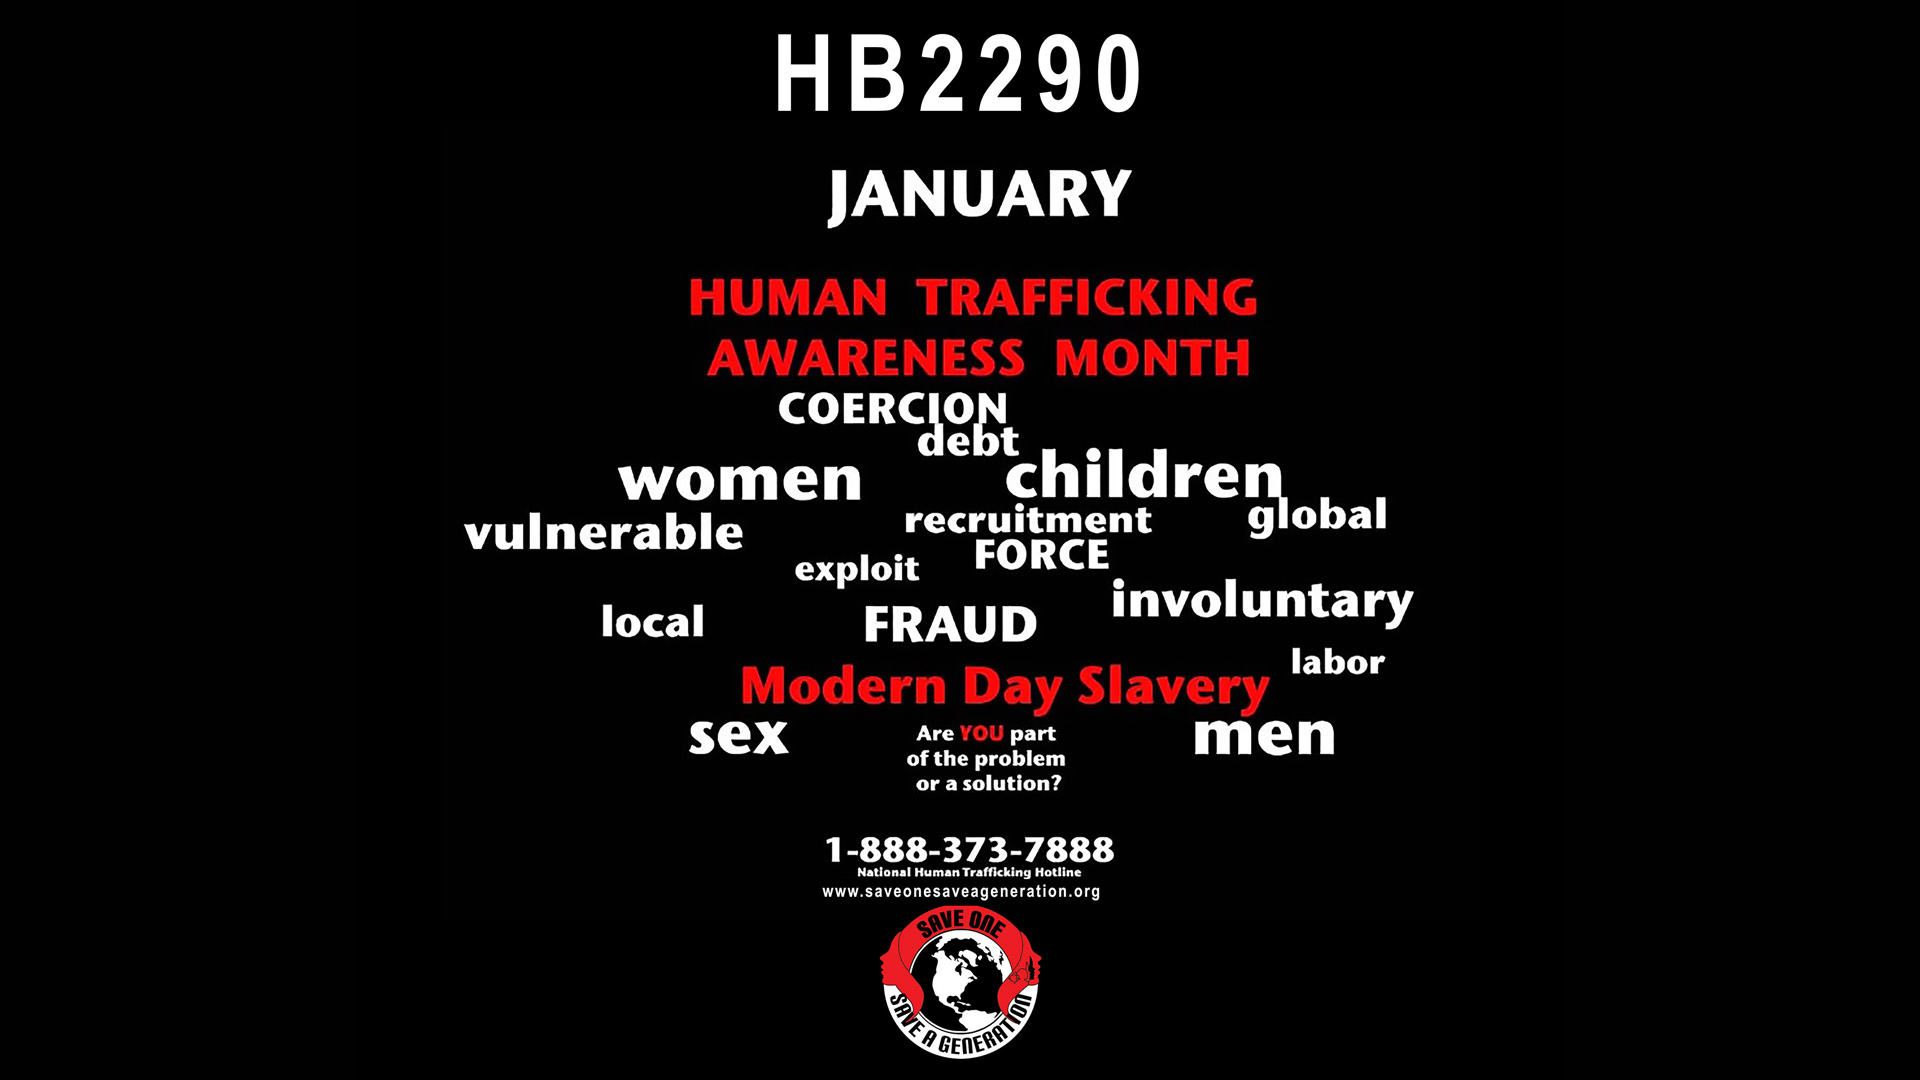 HB 2290 - Human Traffick Awareness Month